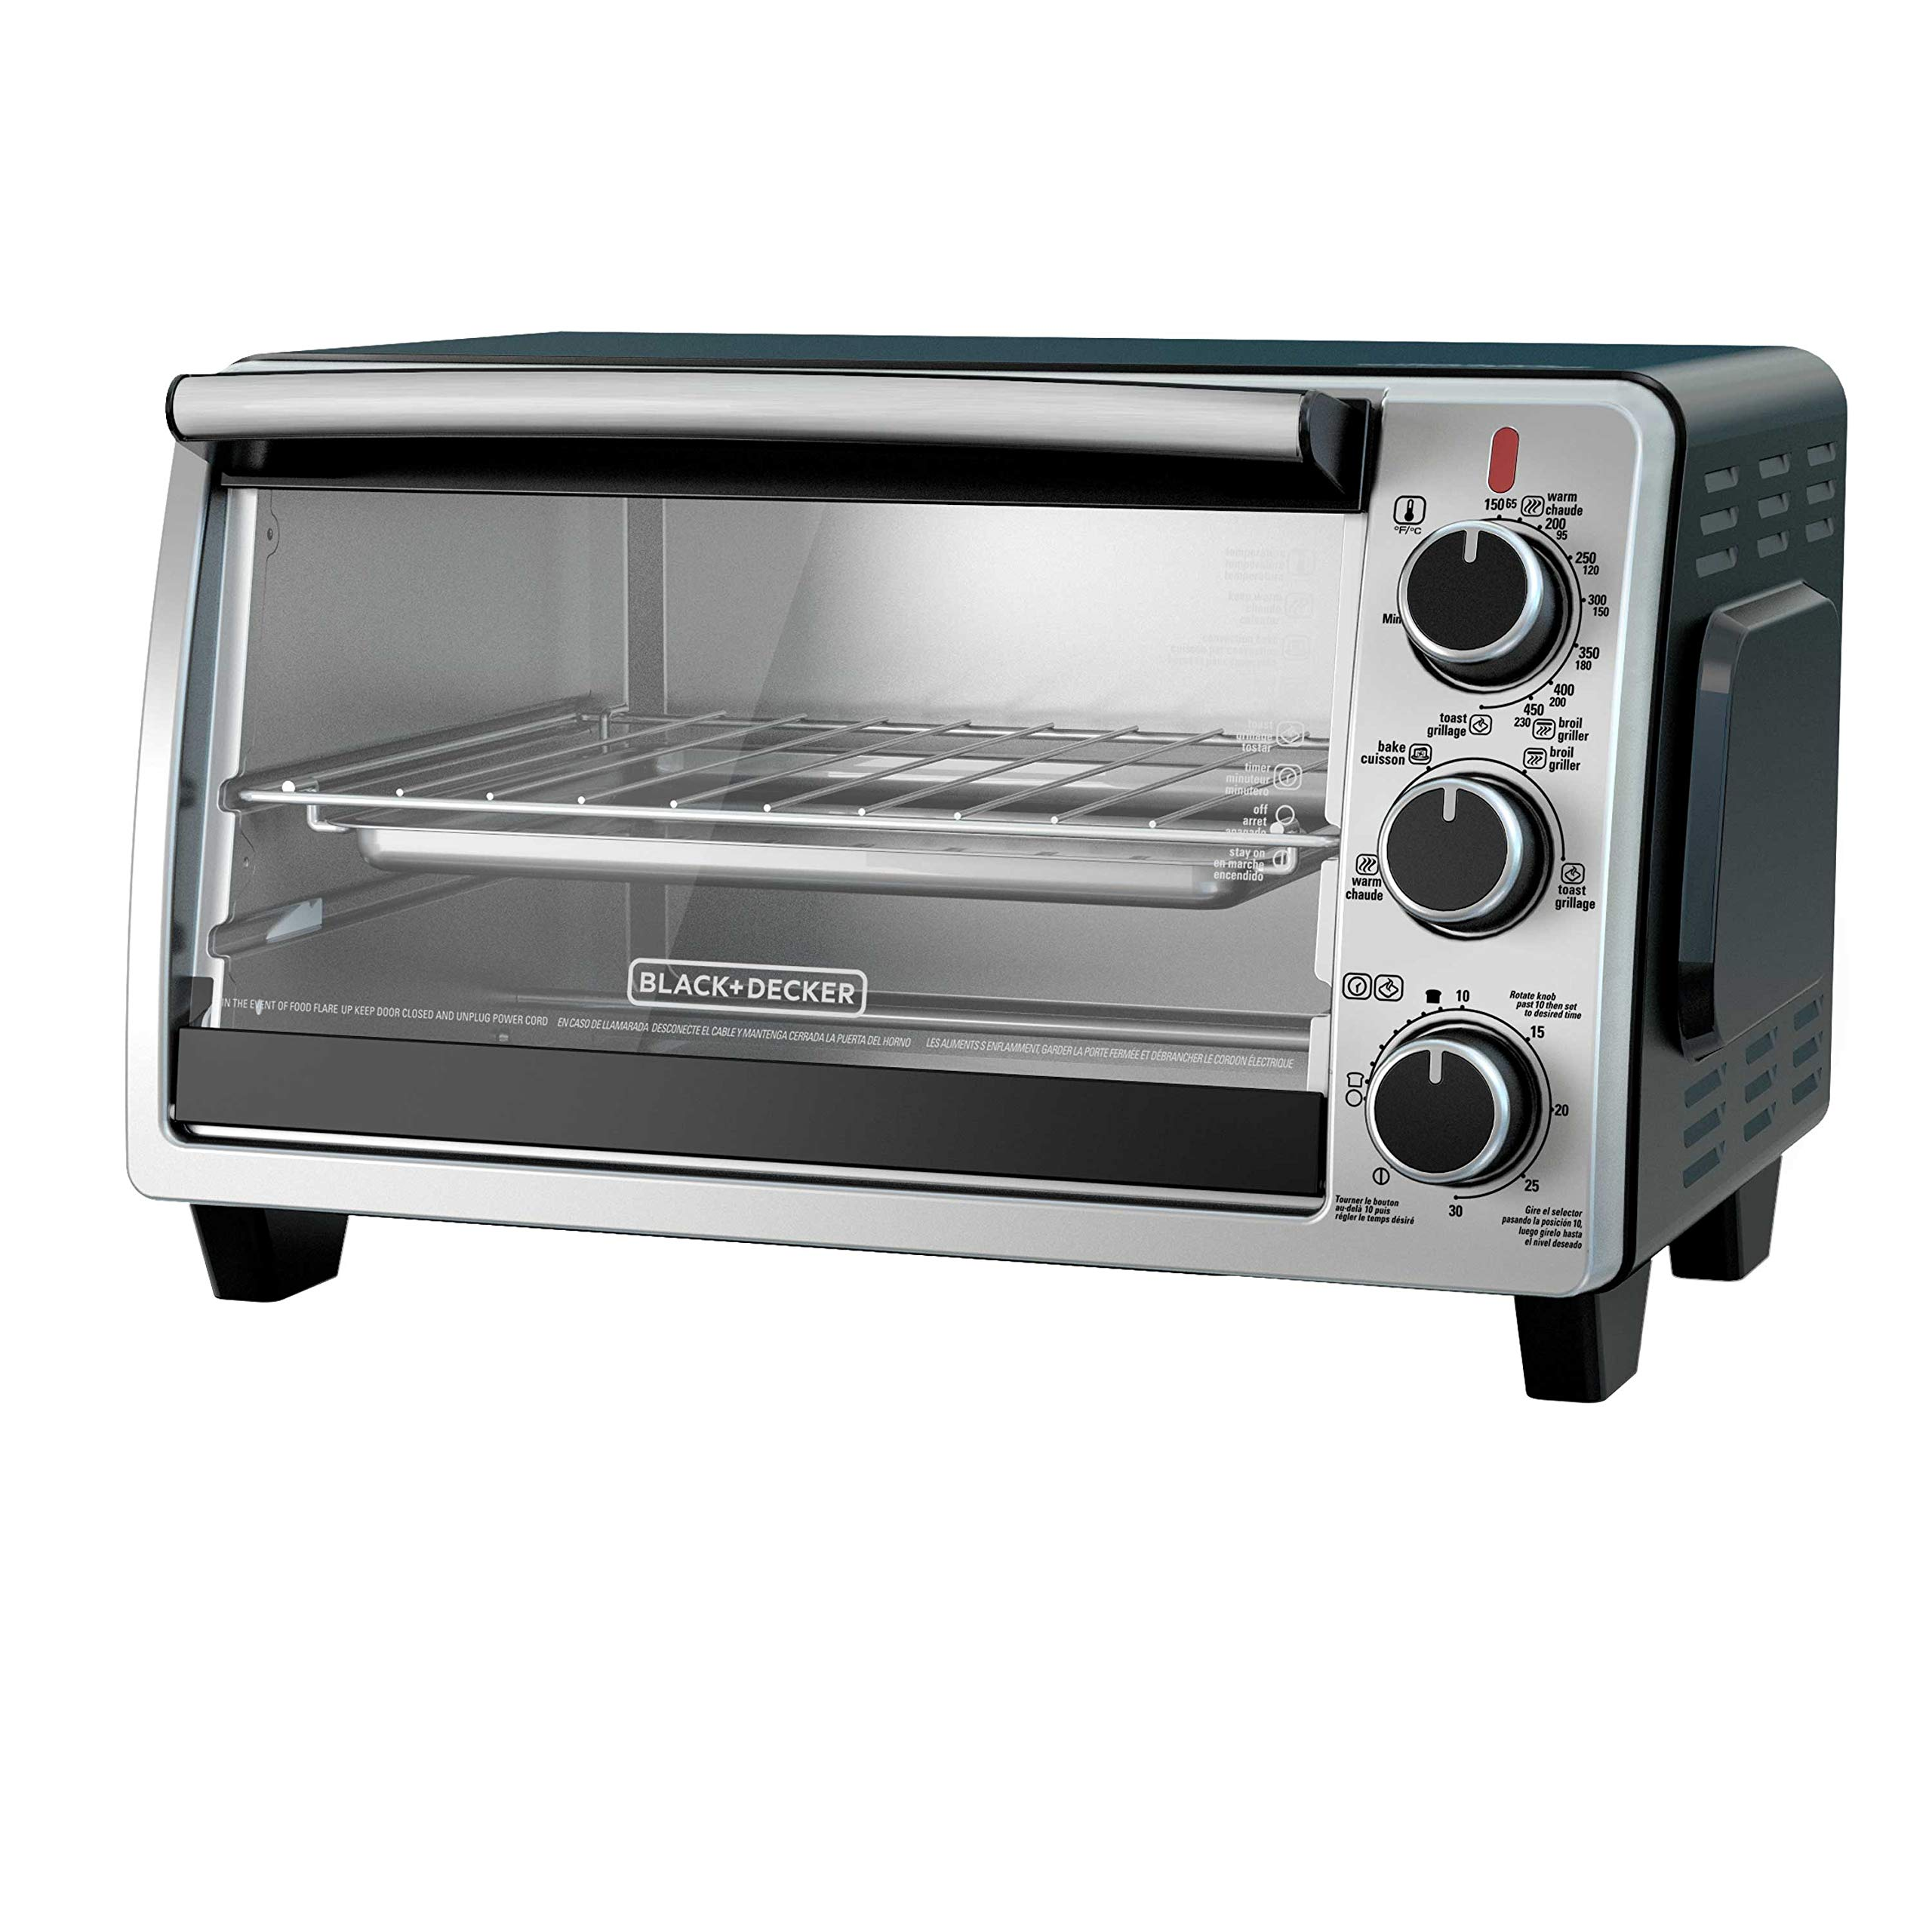 BLACK+DECKER TO1950SBD 6-Slice Convection Countertop Toaster Oven, Includes Bake Pan, Broil Rack & Toasting Rack, Stainless Steel/Black Convection Toaster Oven by BLACK+DECKER